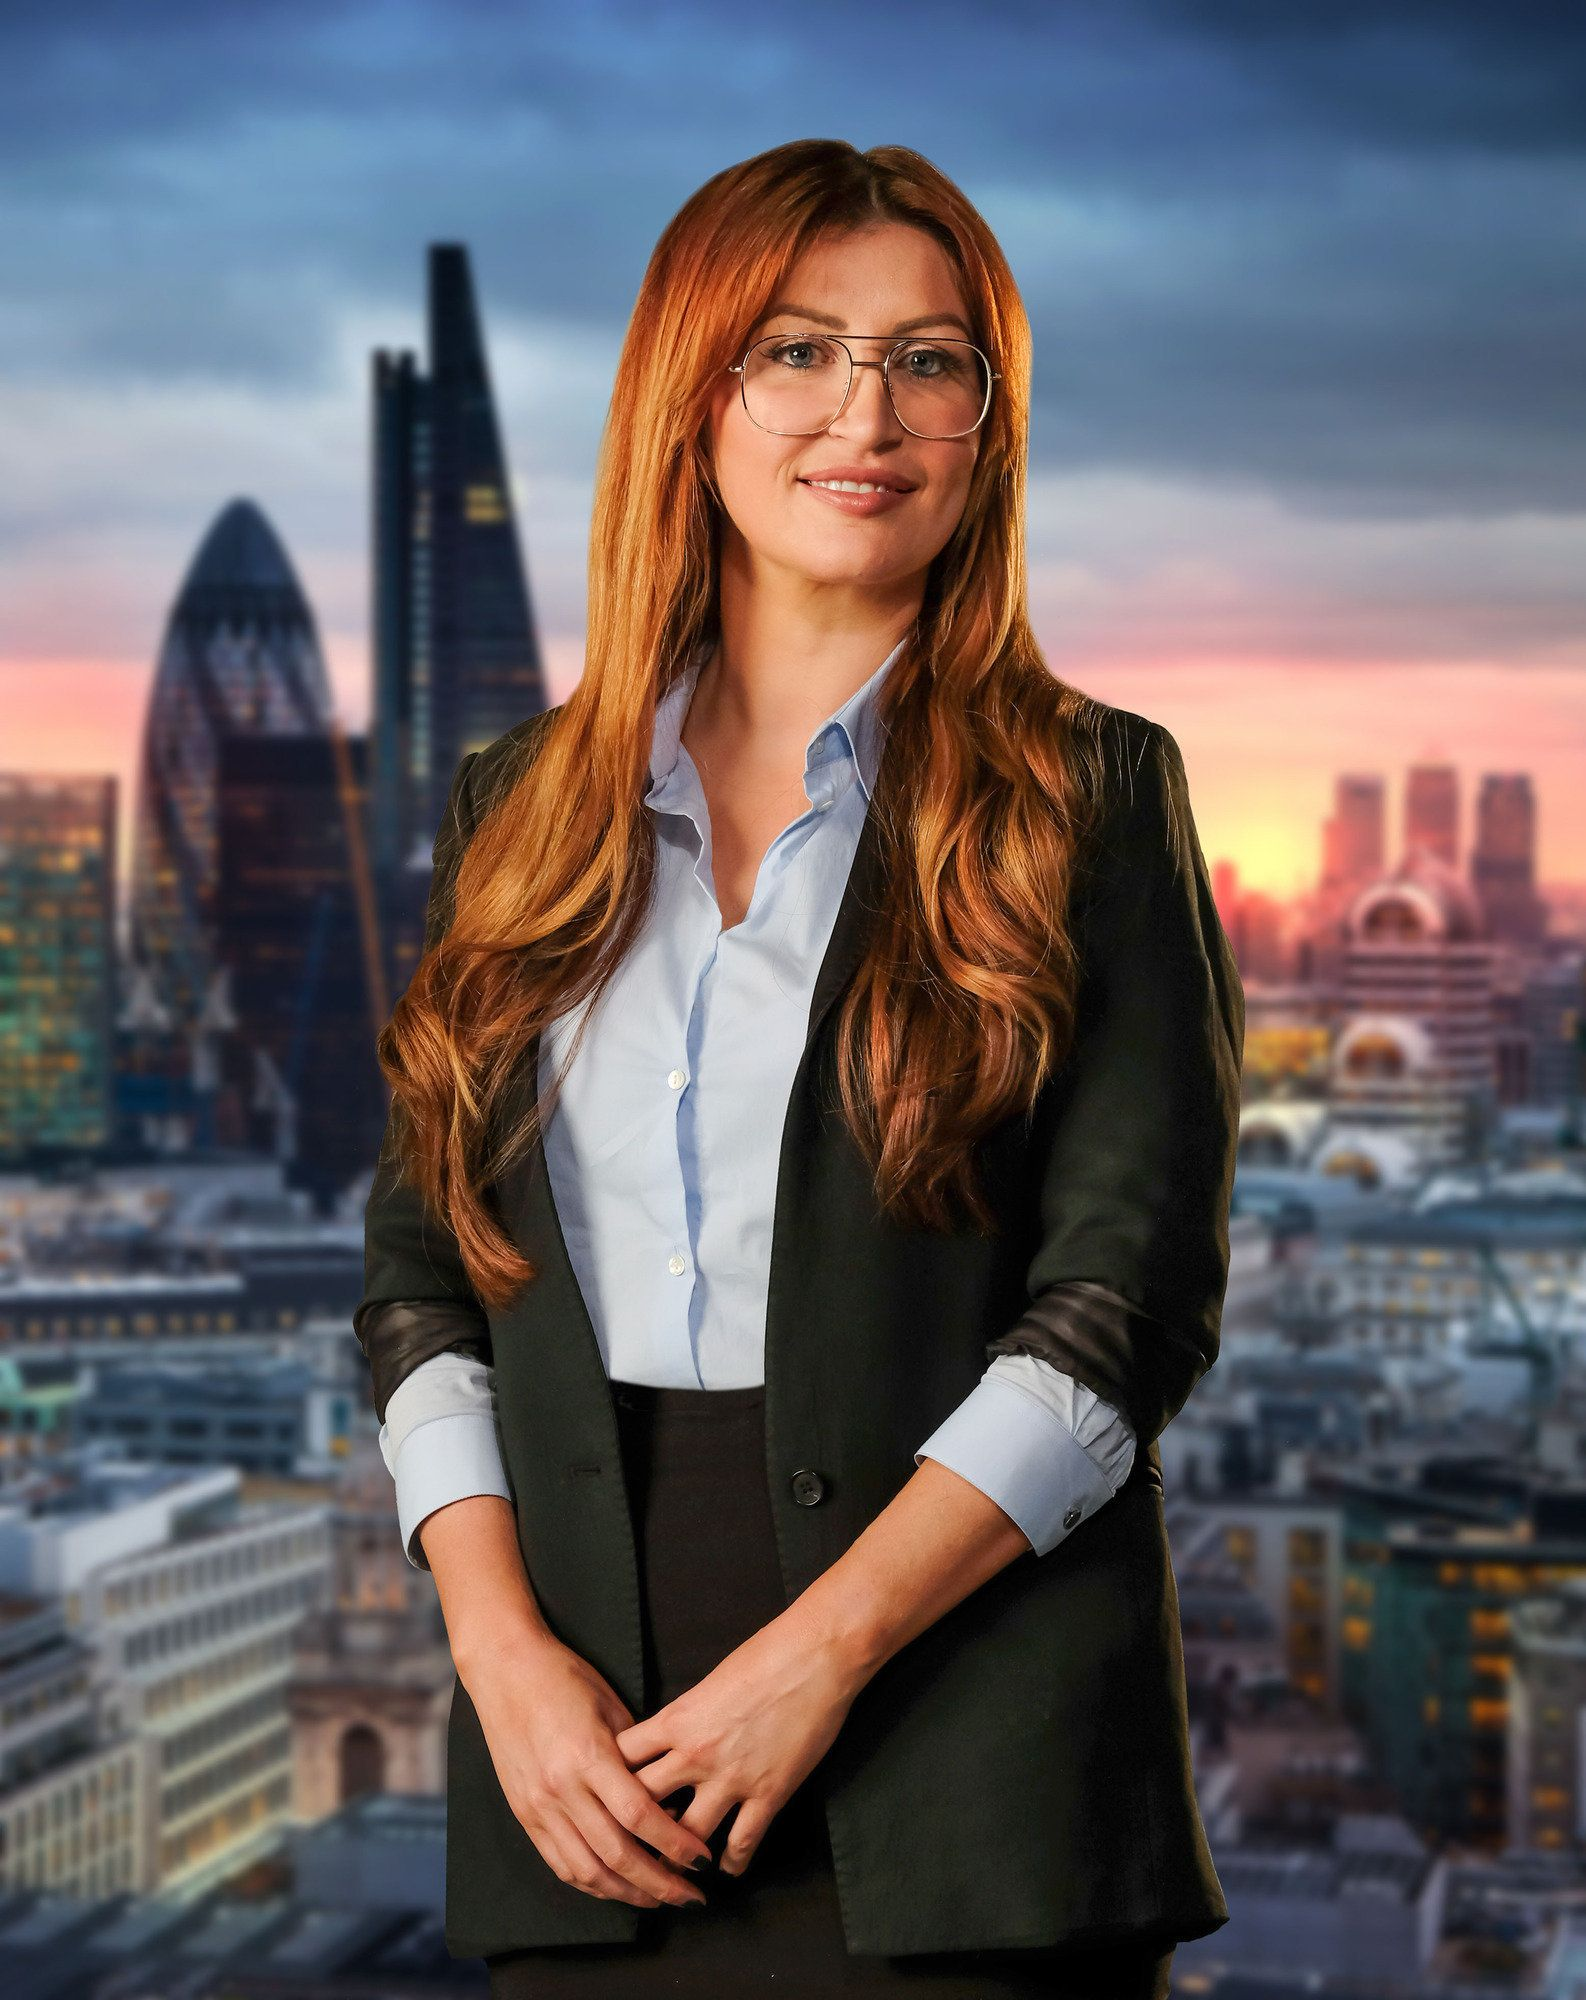 <strong>Michaela Wain has been fired from 'The Apprentice'</strong>